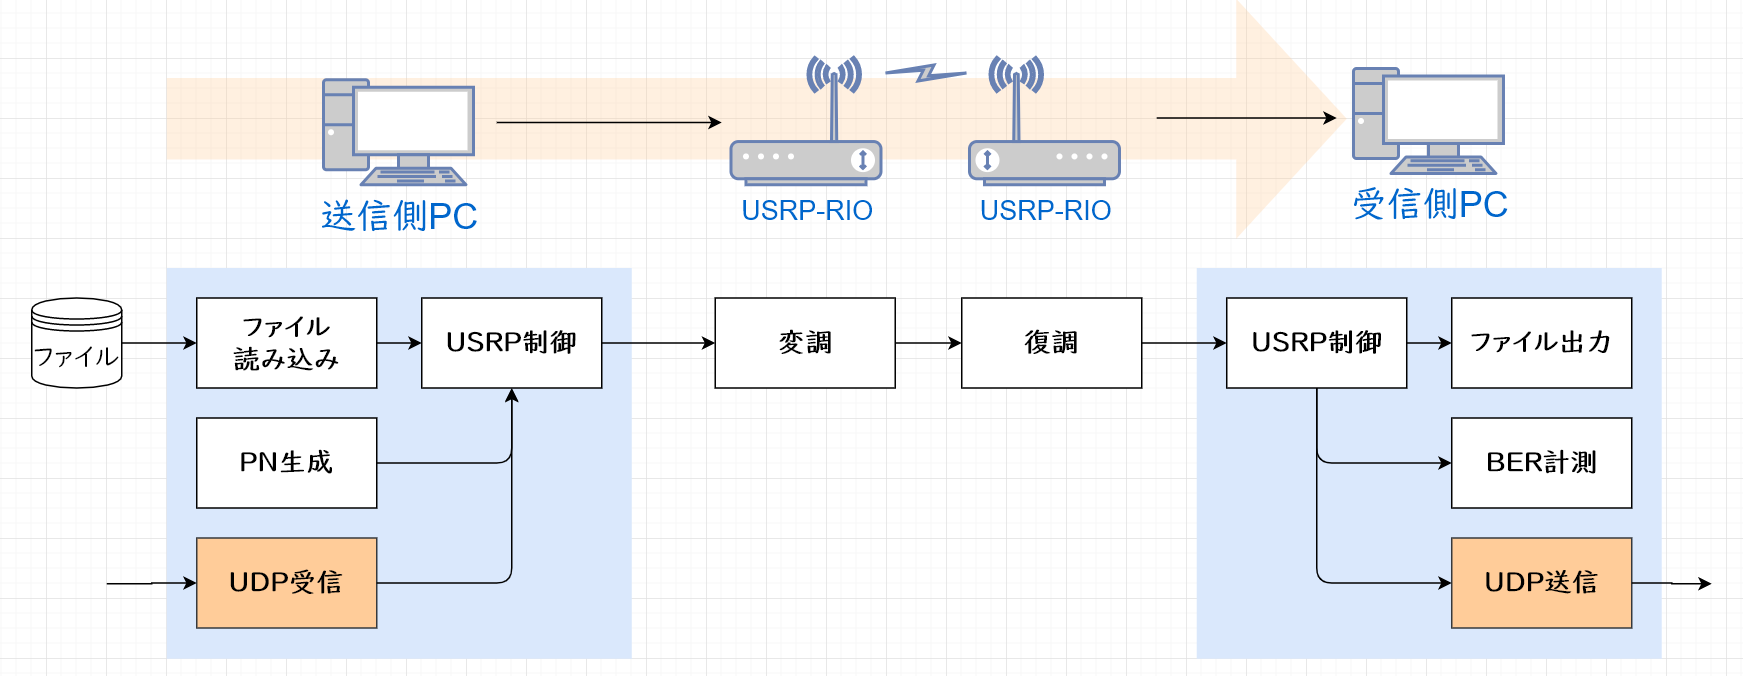 Ethernet over SDRを適用する